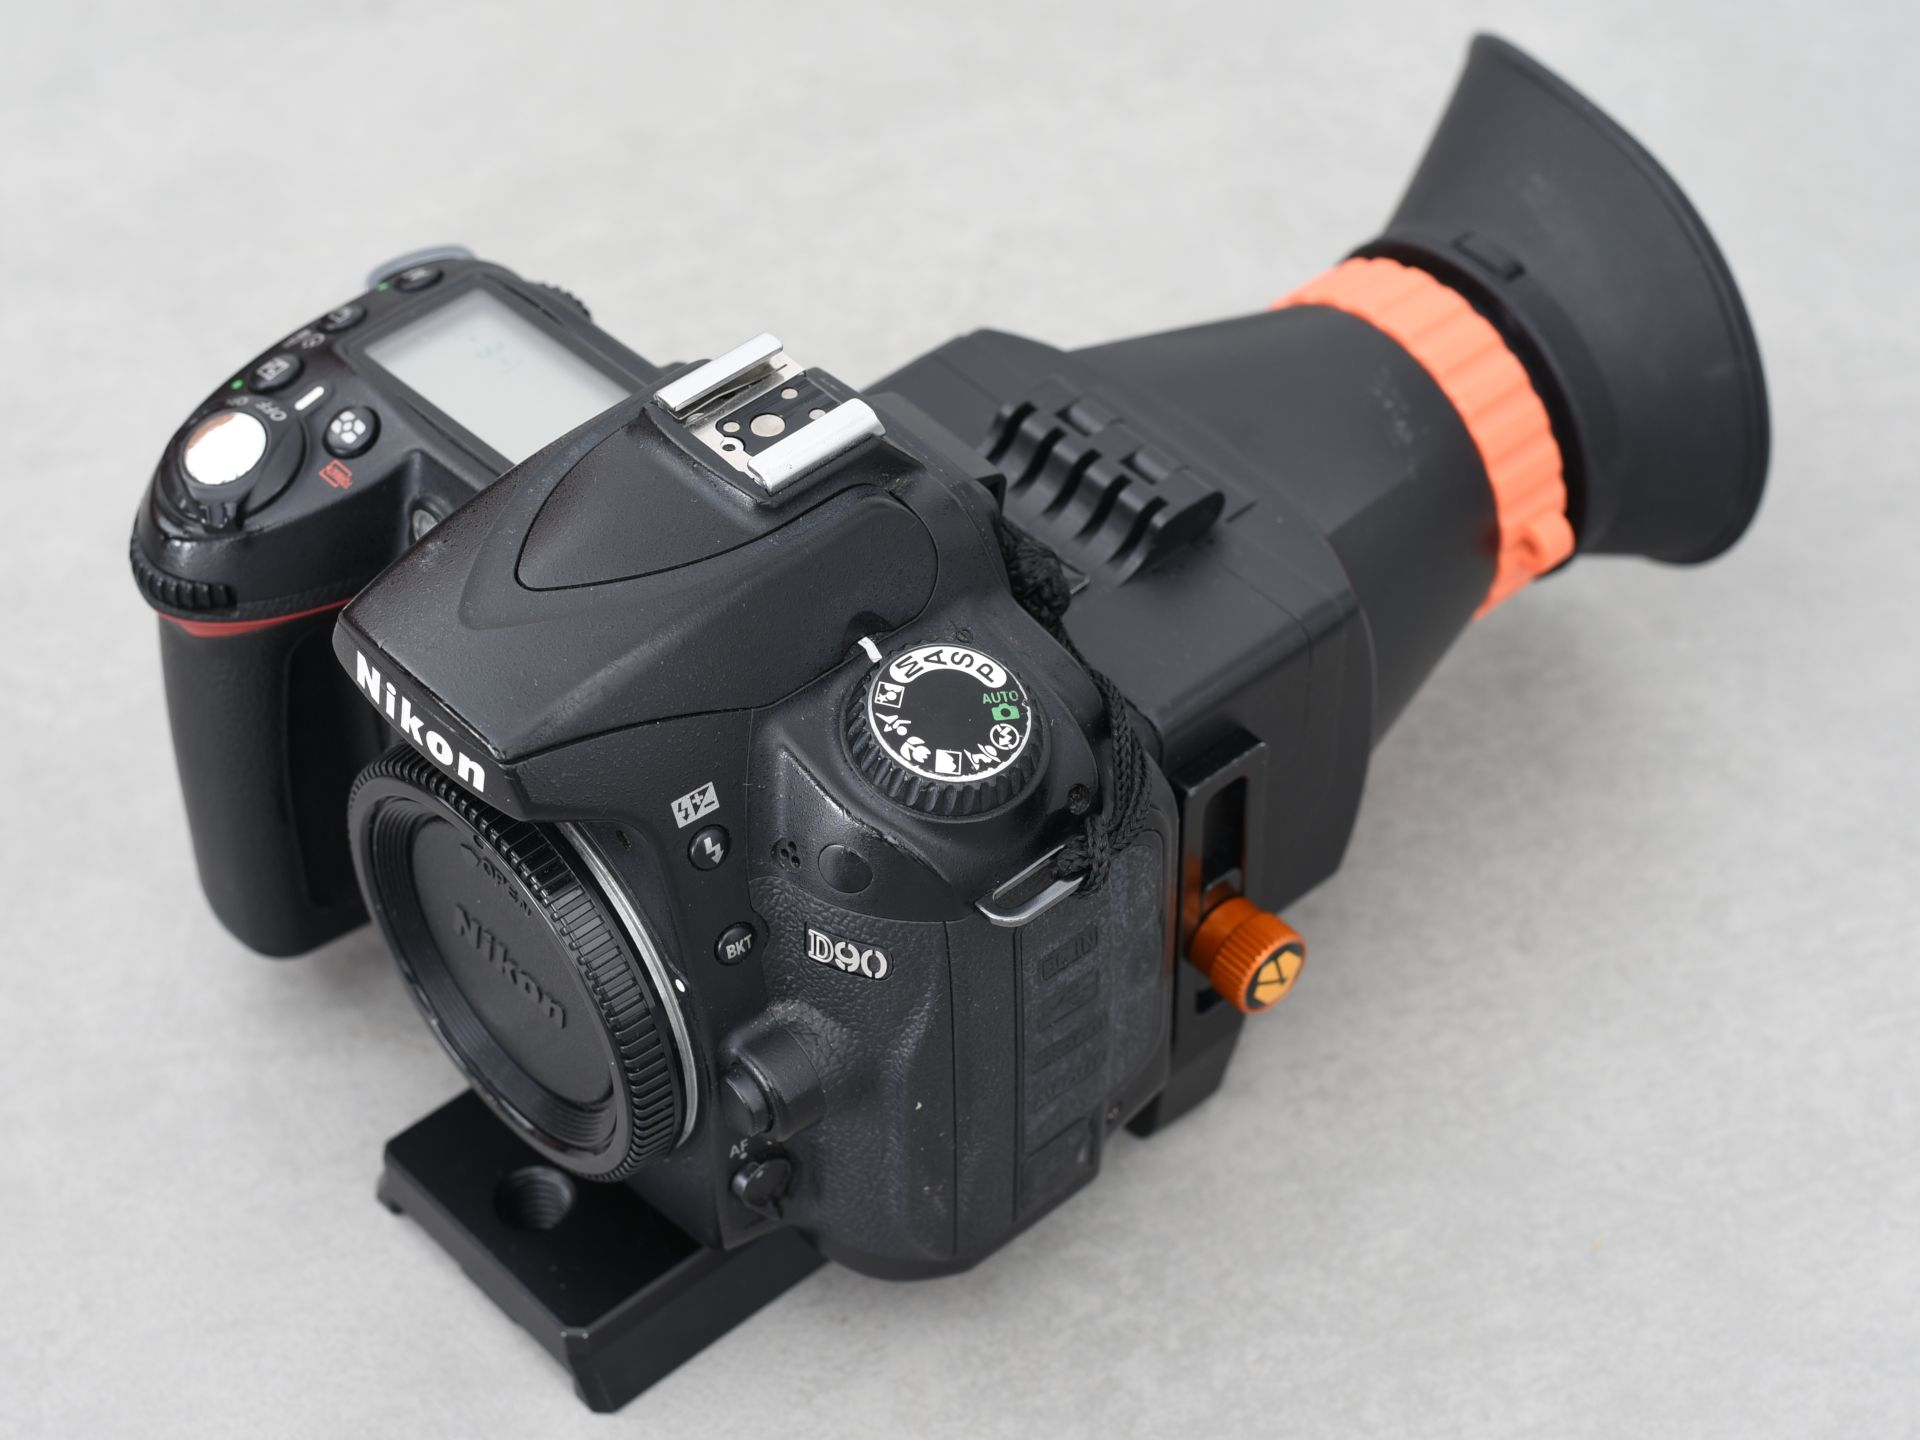 Nikon D90 infrared front view